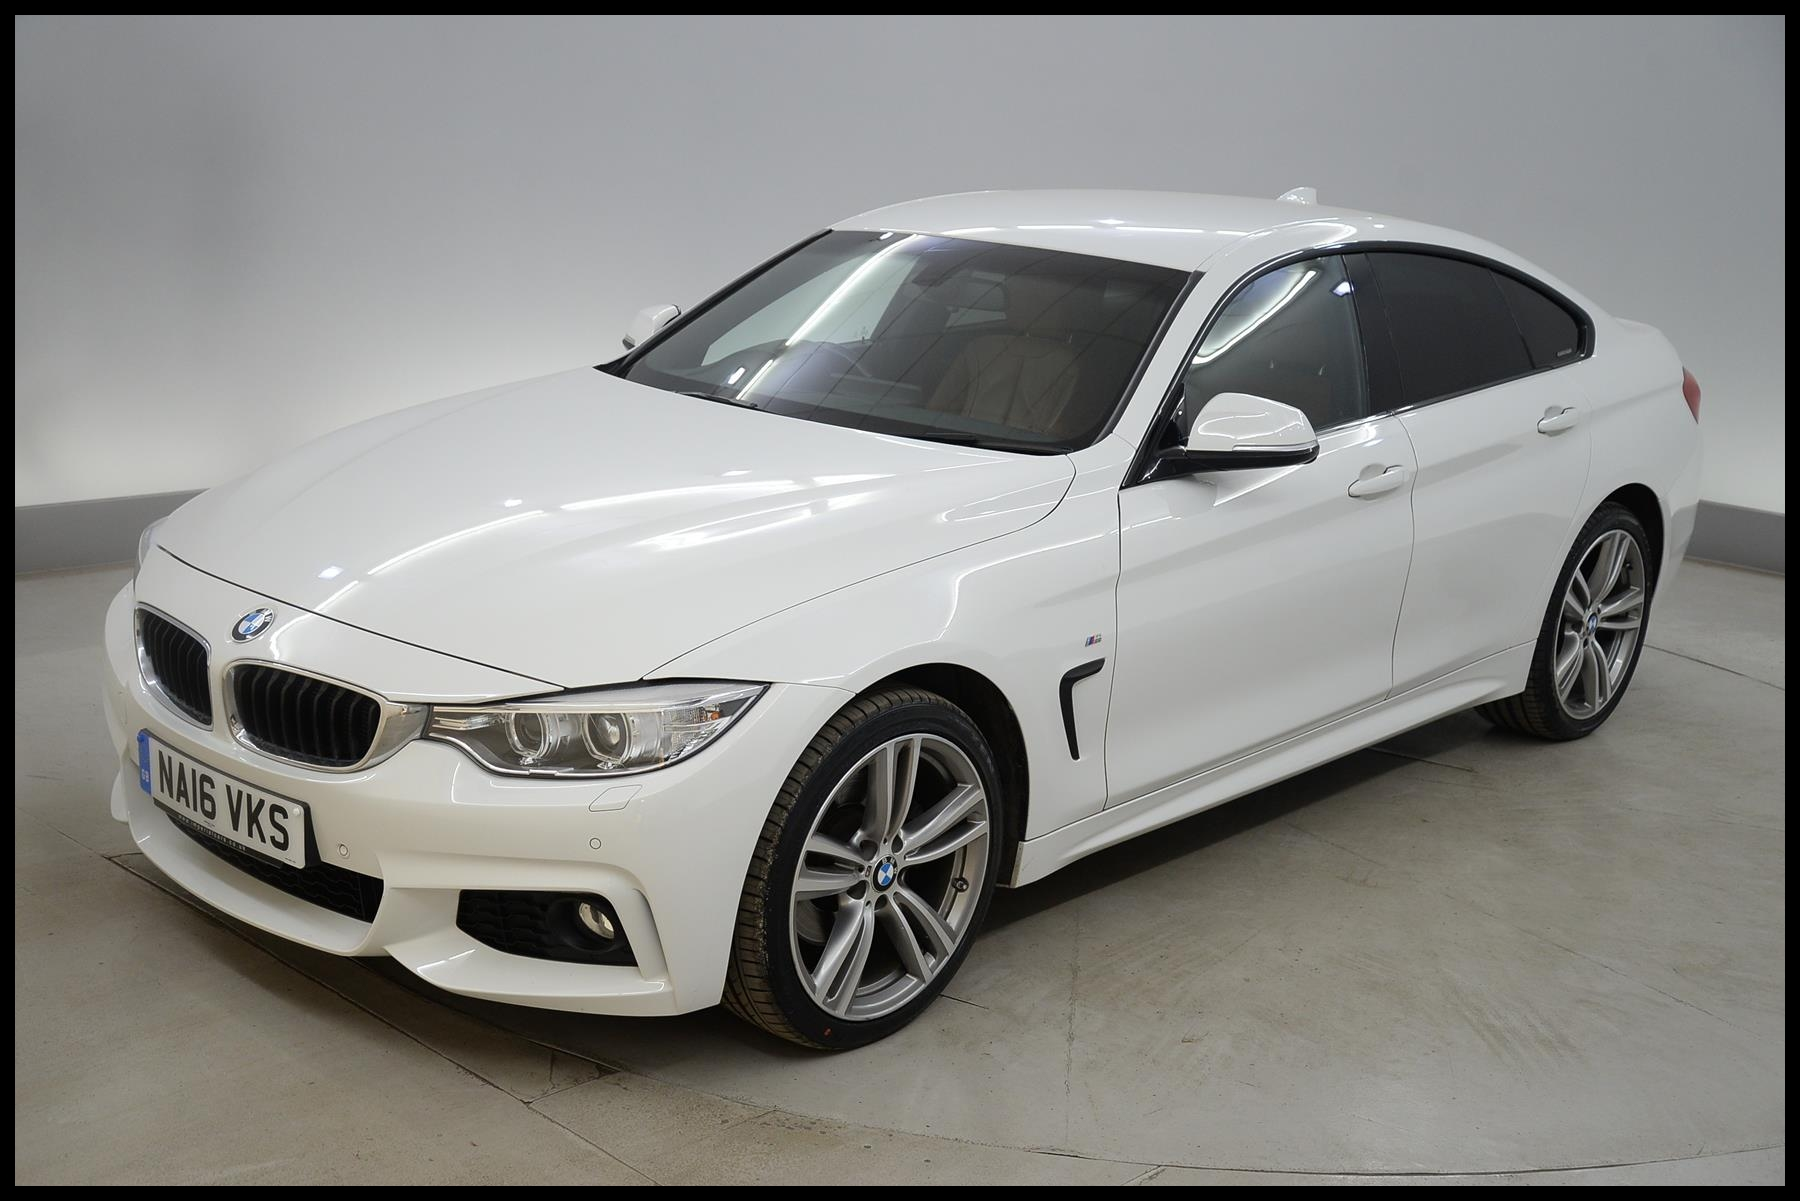 Used 2016 BMW 4 Series Gran Coupe 430d xDrive M Sport 5dr Auto [Professional Media] HEATED LEATHER DAB CD for sale in Bucks